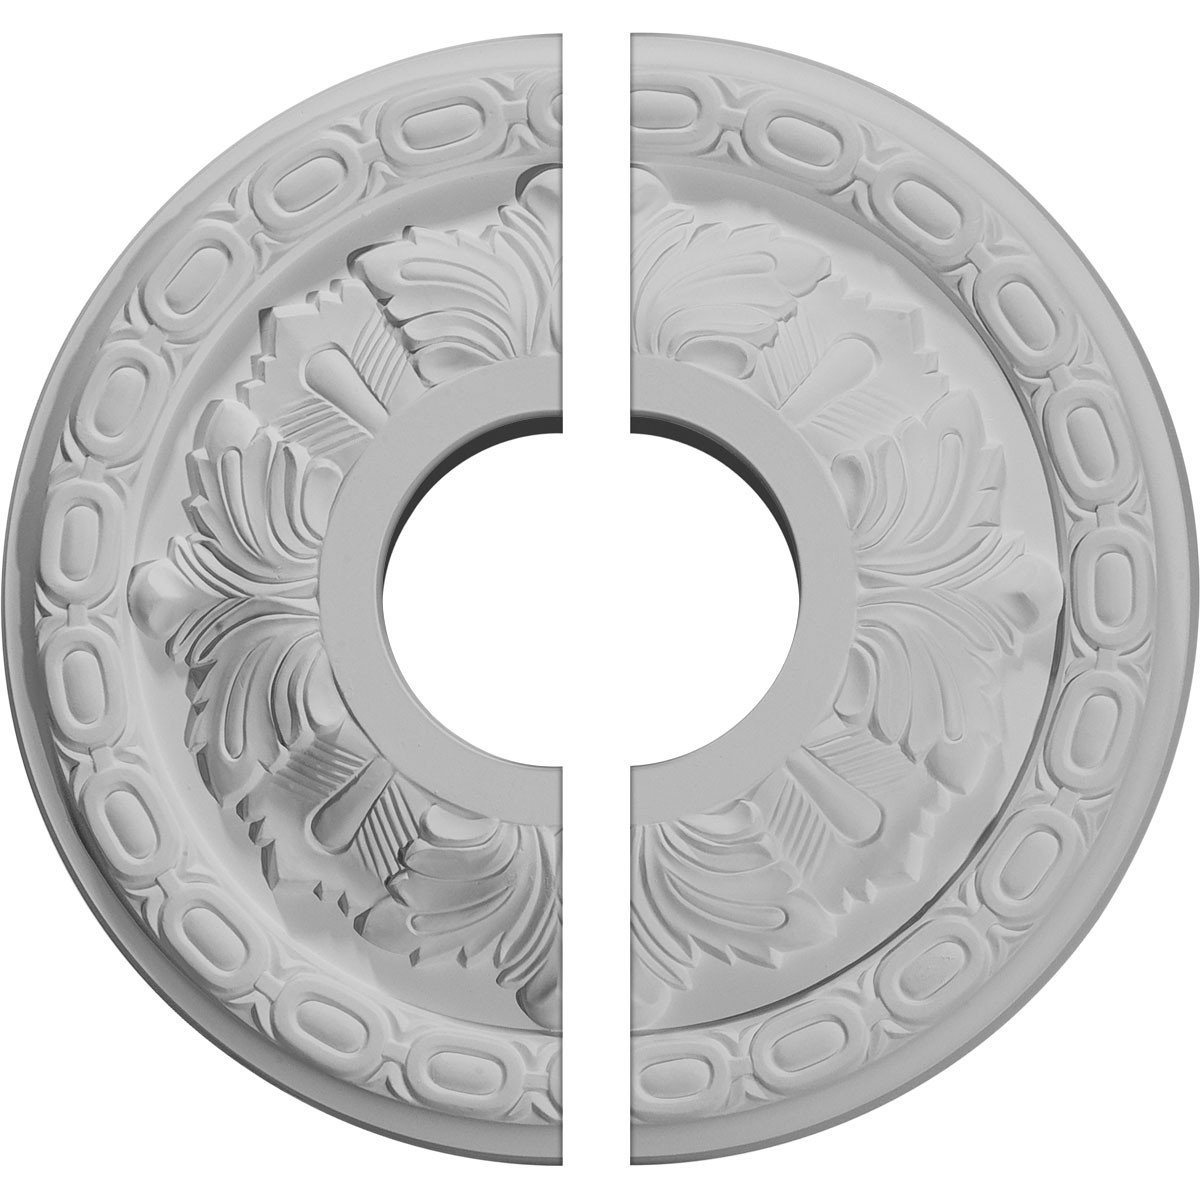 "EM-CM11LF2 - 11 3/8""OD x 3 5/8""ID x 1 1/8""P Leaf Ceiling Medallion, Two Piece (Fits Canopies up to 4 3/4"")"